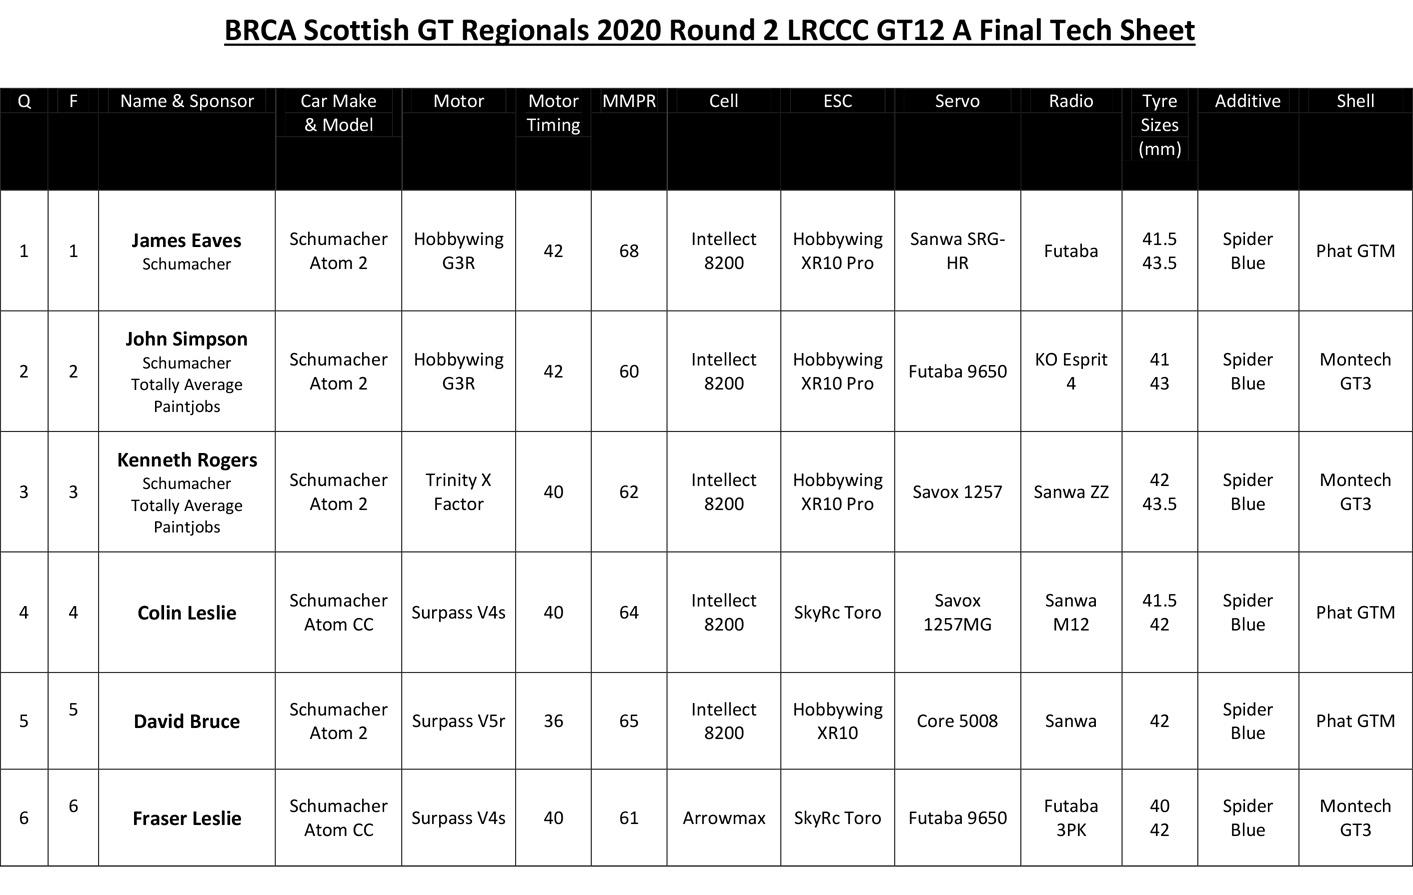 Regionals tech sheet 2020 rd2